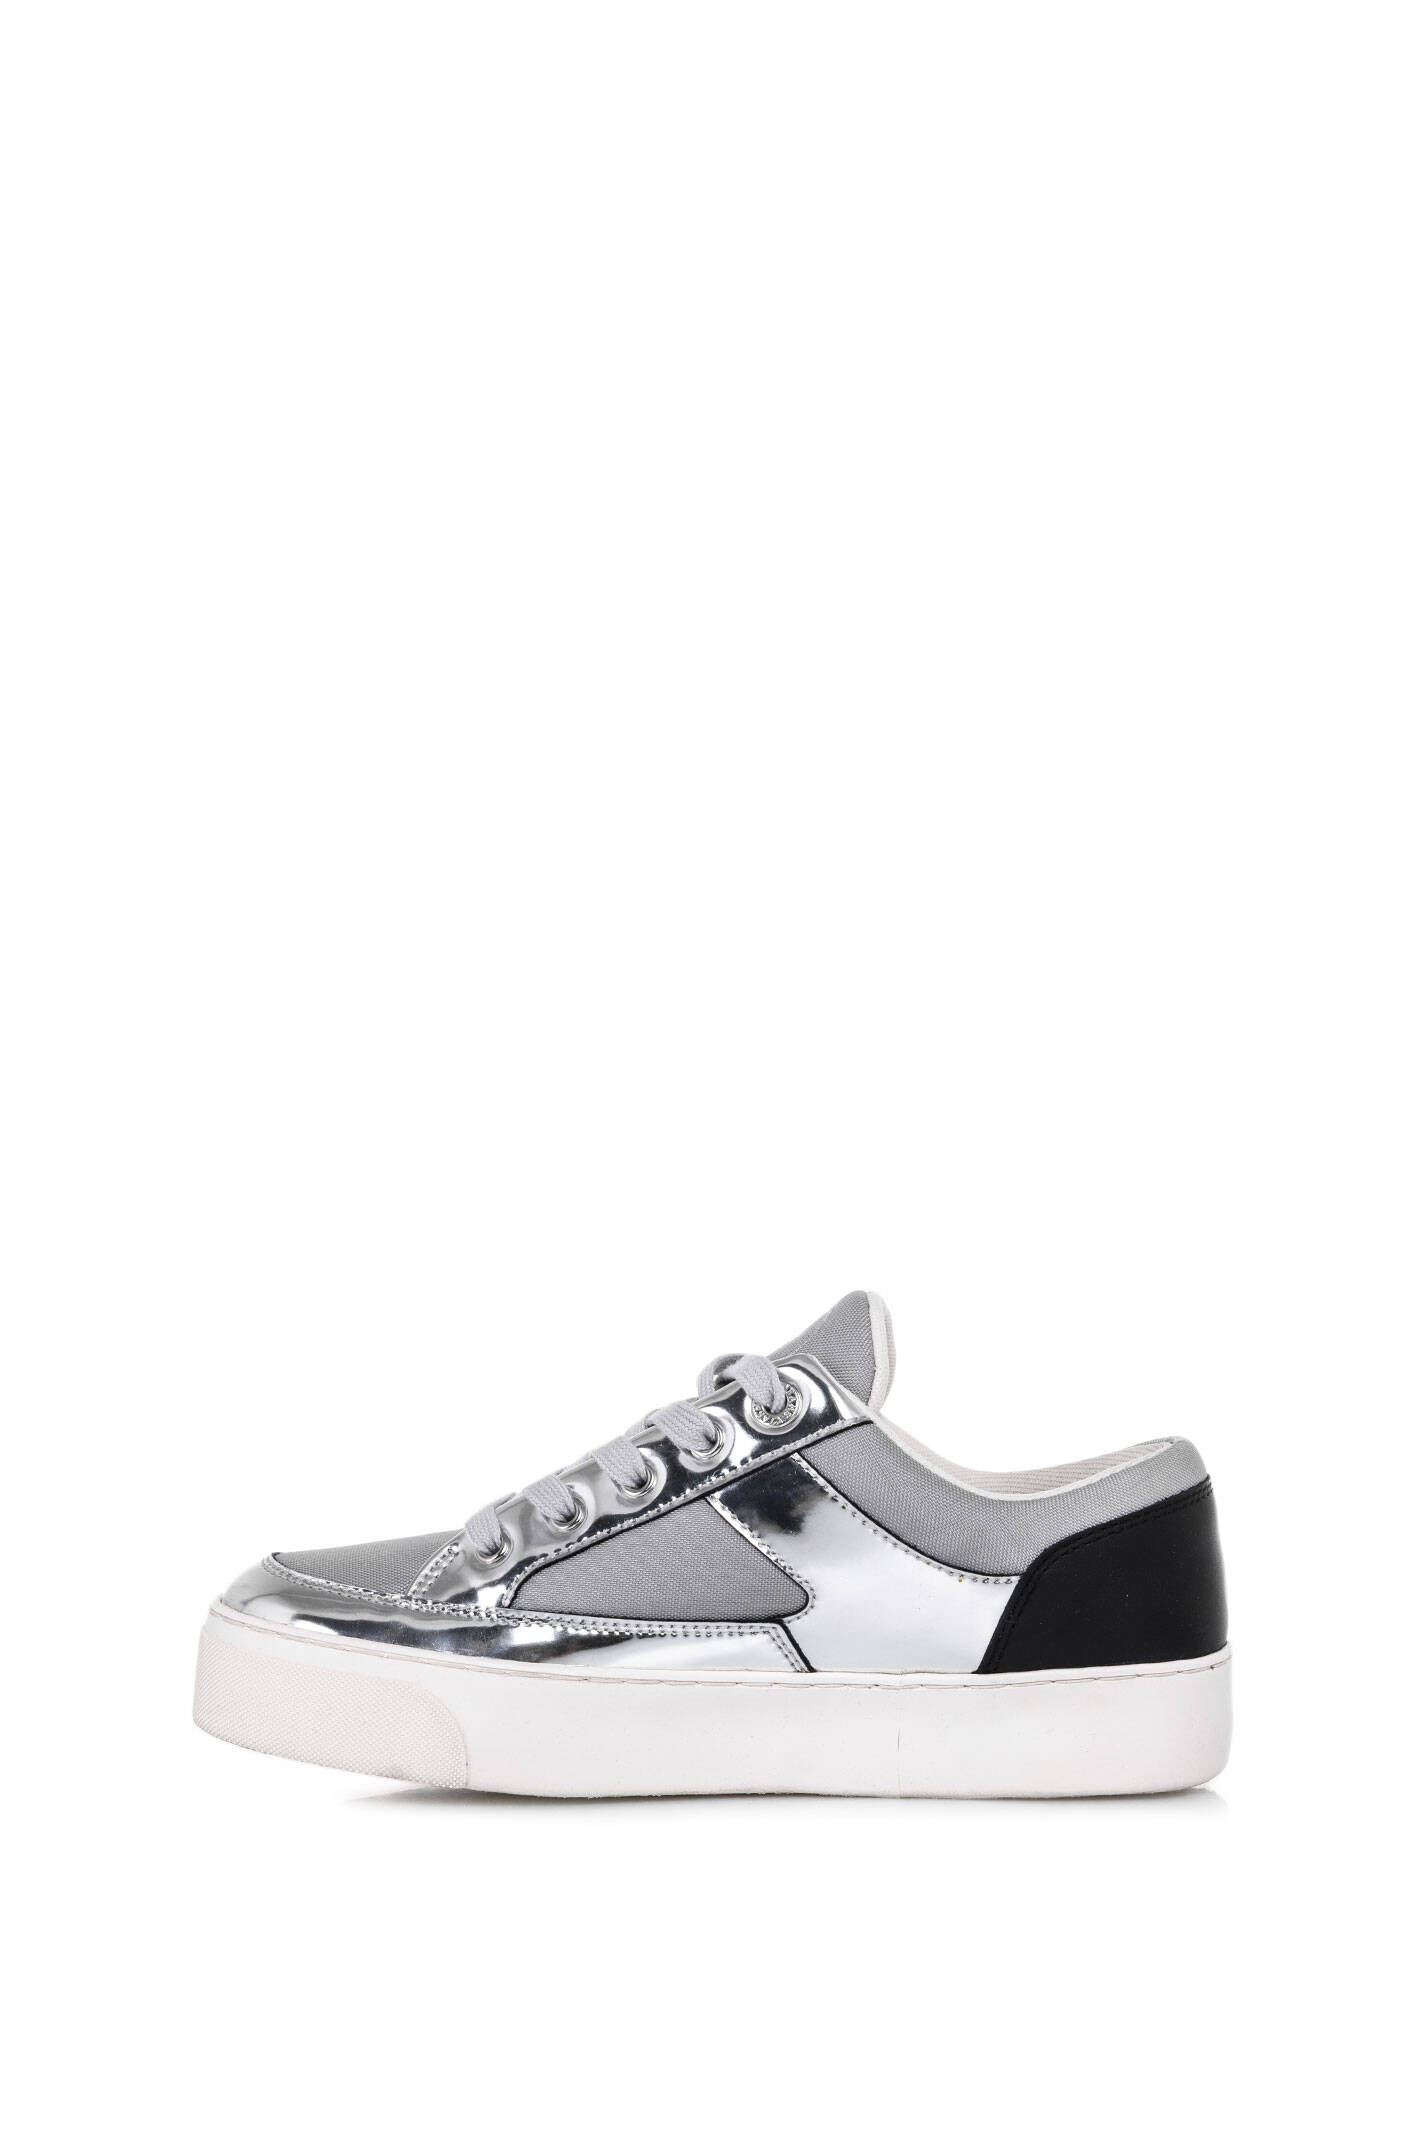 sneakers armani jeans silver sneakers. Black Bedroom Furniture Sets. Home Design Ideas